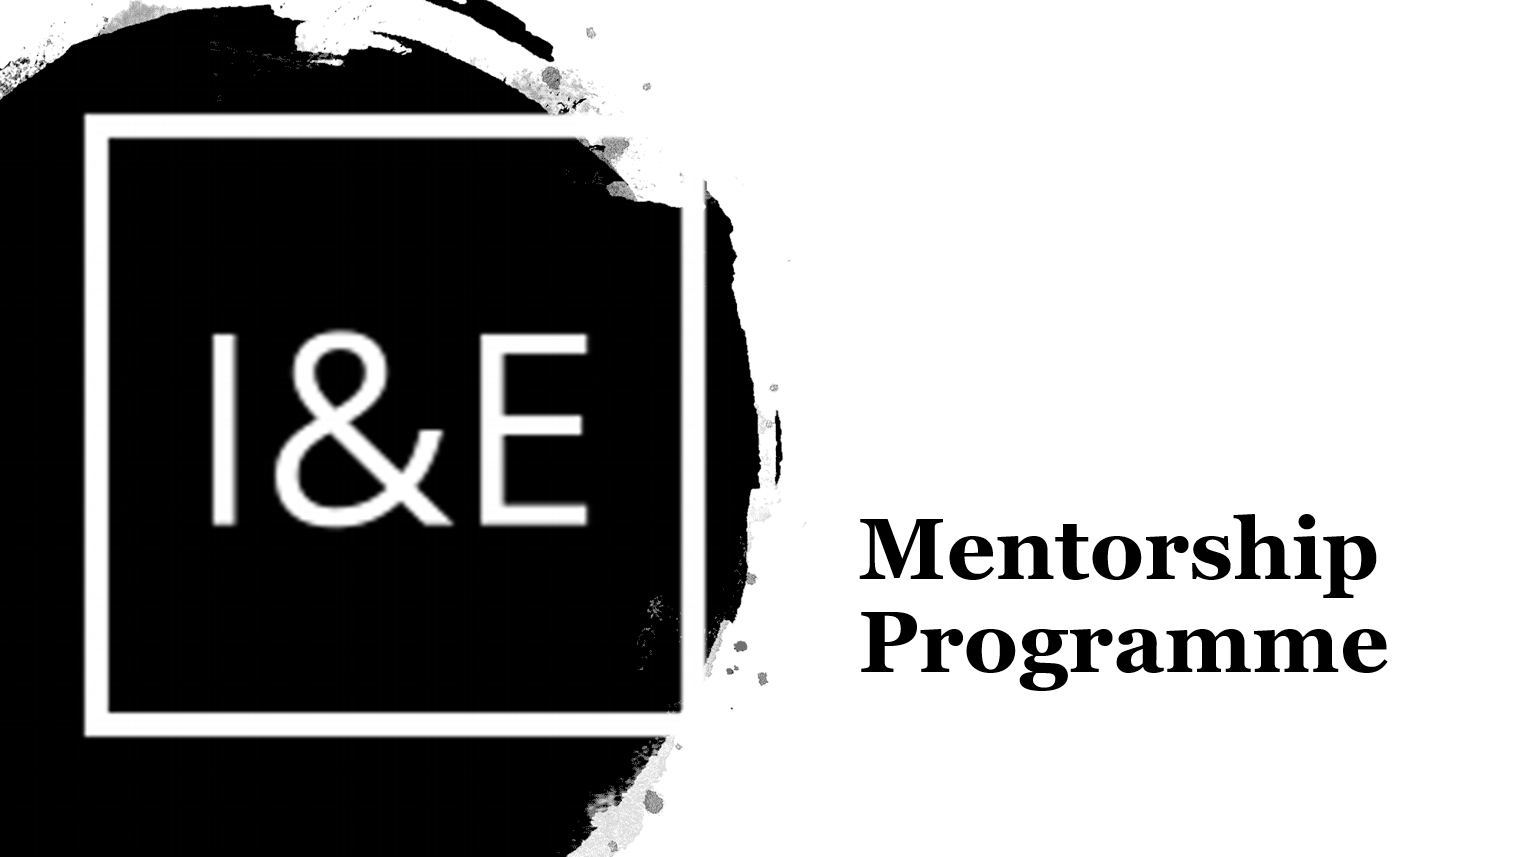 I&E Mentorship.PNG